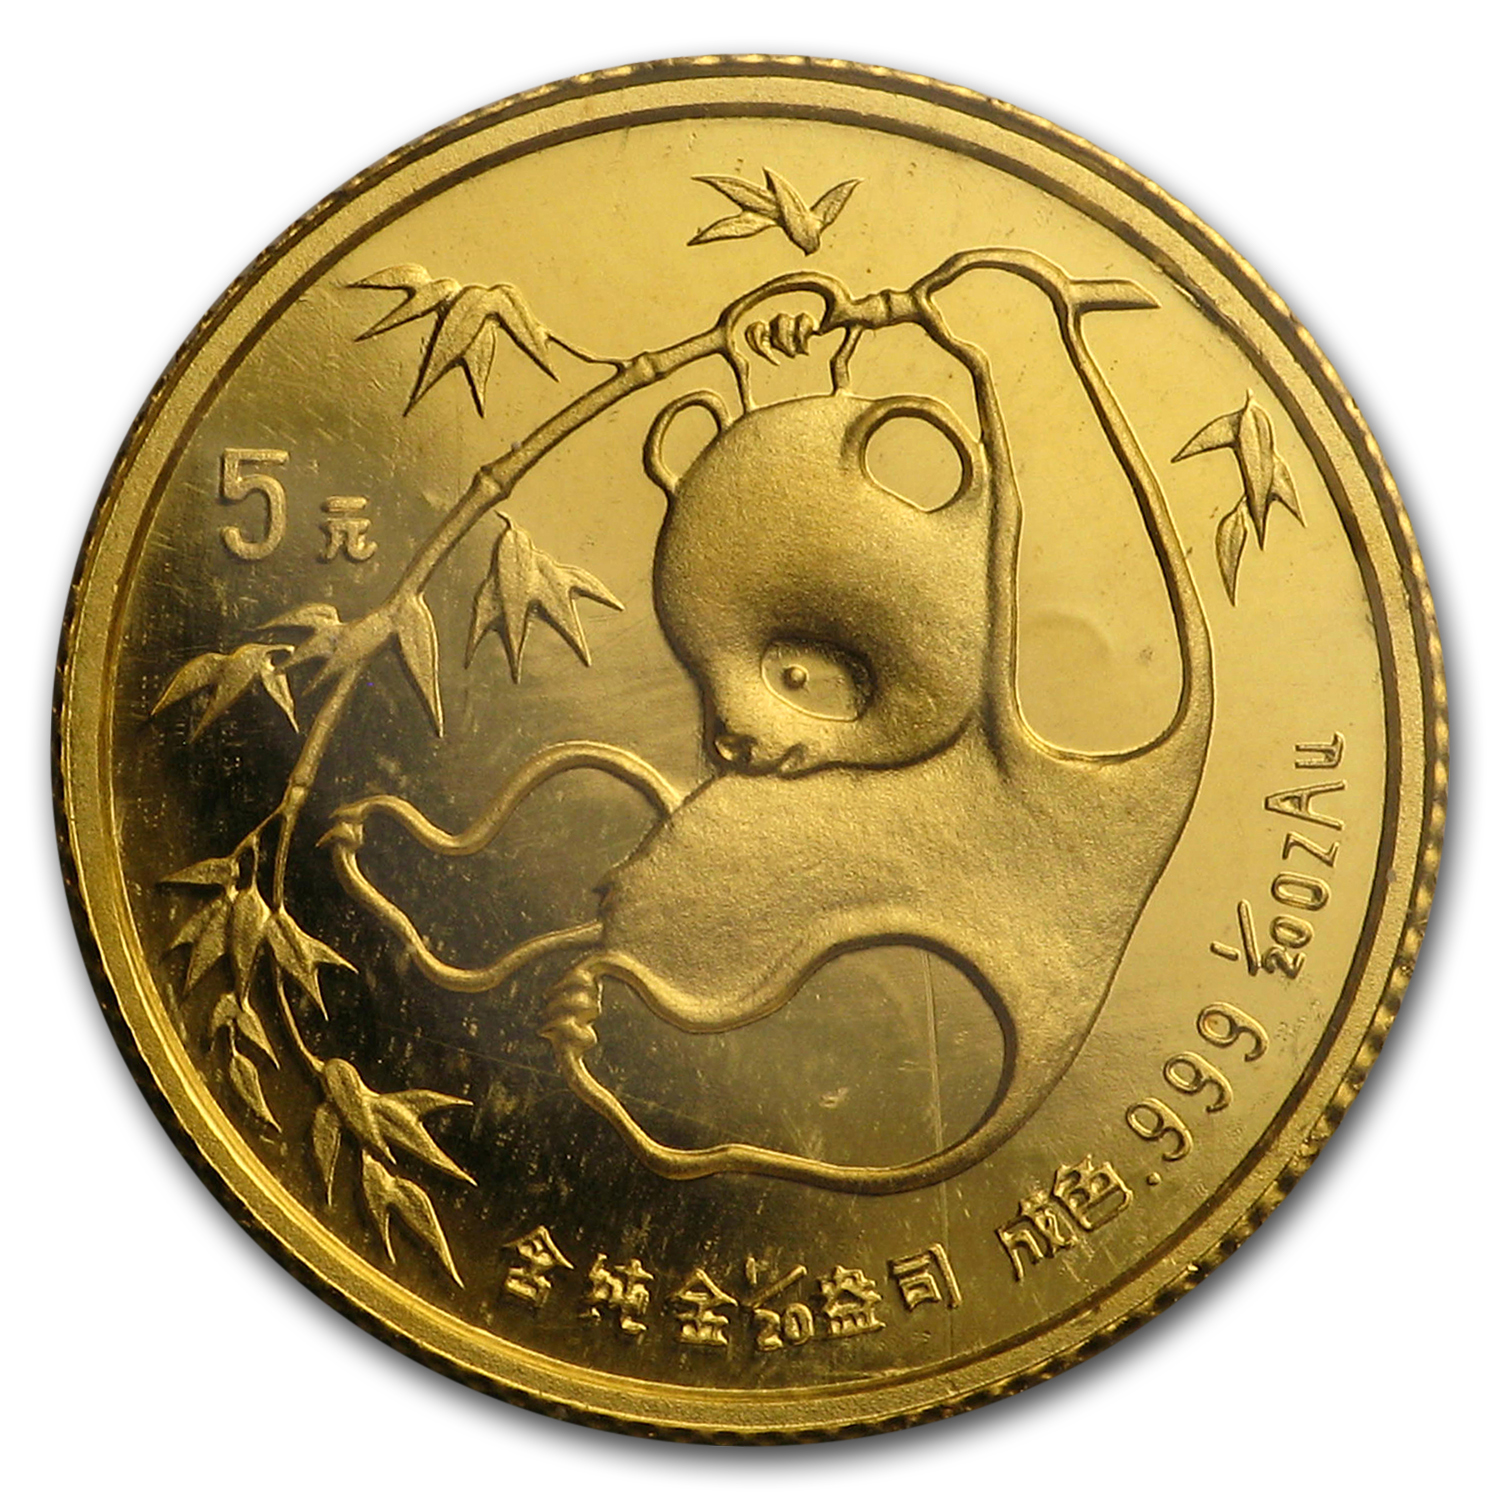 1/20 oz Gold Chinese Panda BU - Random Year (Sealed)